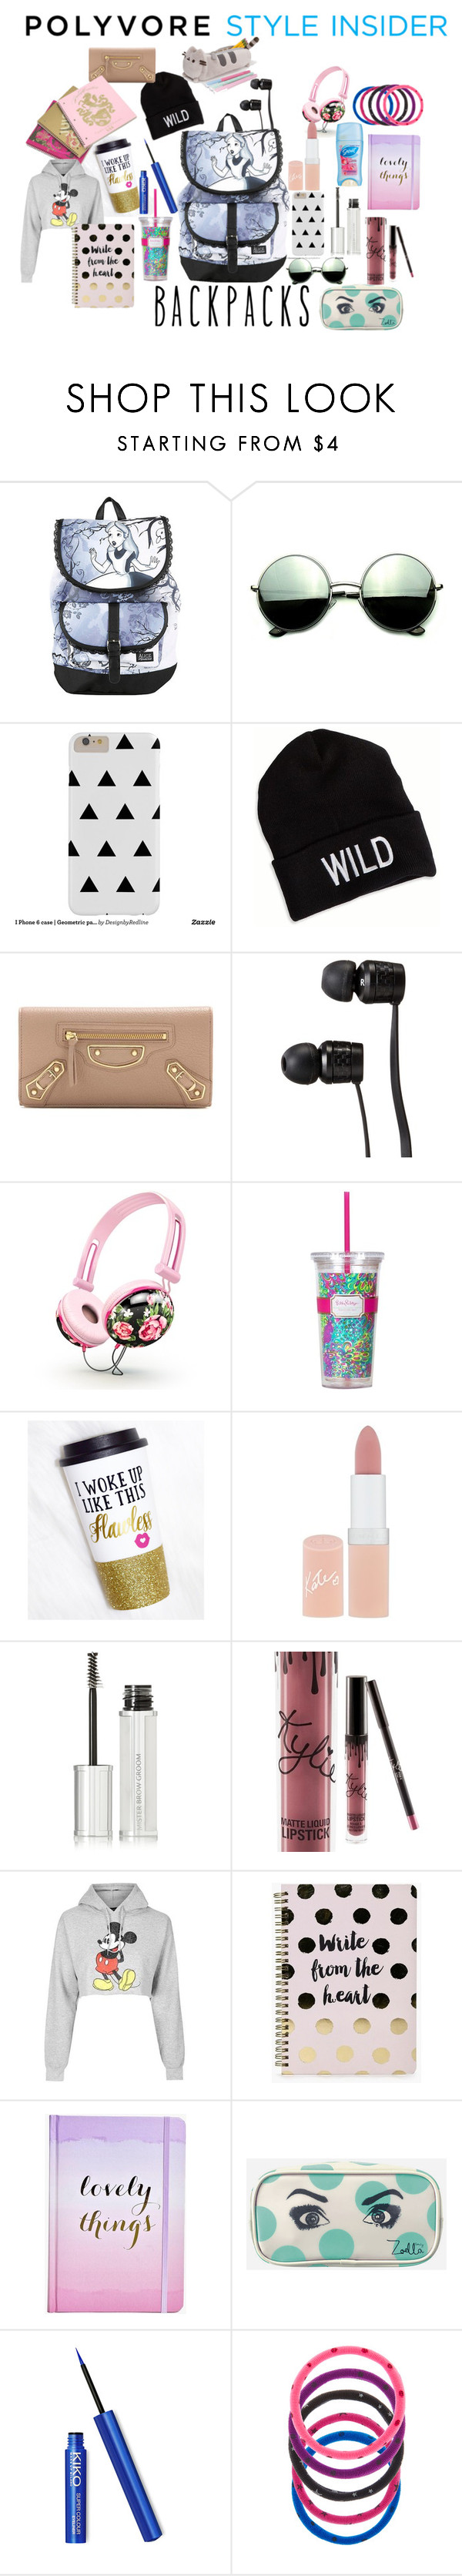 """Backpacks"" by lilylacie ❤ liked on Polyvore featuring Disney, Revo, American Eagle Outfitters, Balenciaga, Vans, Lilly Pulitzer, Rimmel, Givenchy, Kylie Cosmetics and Juicy Couture"